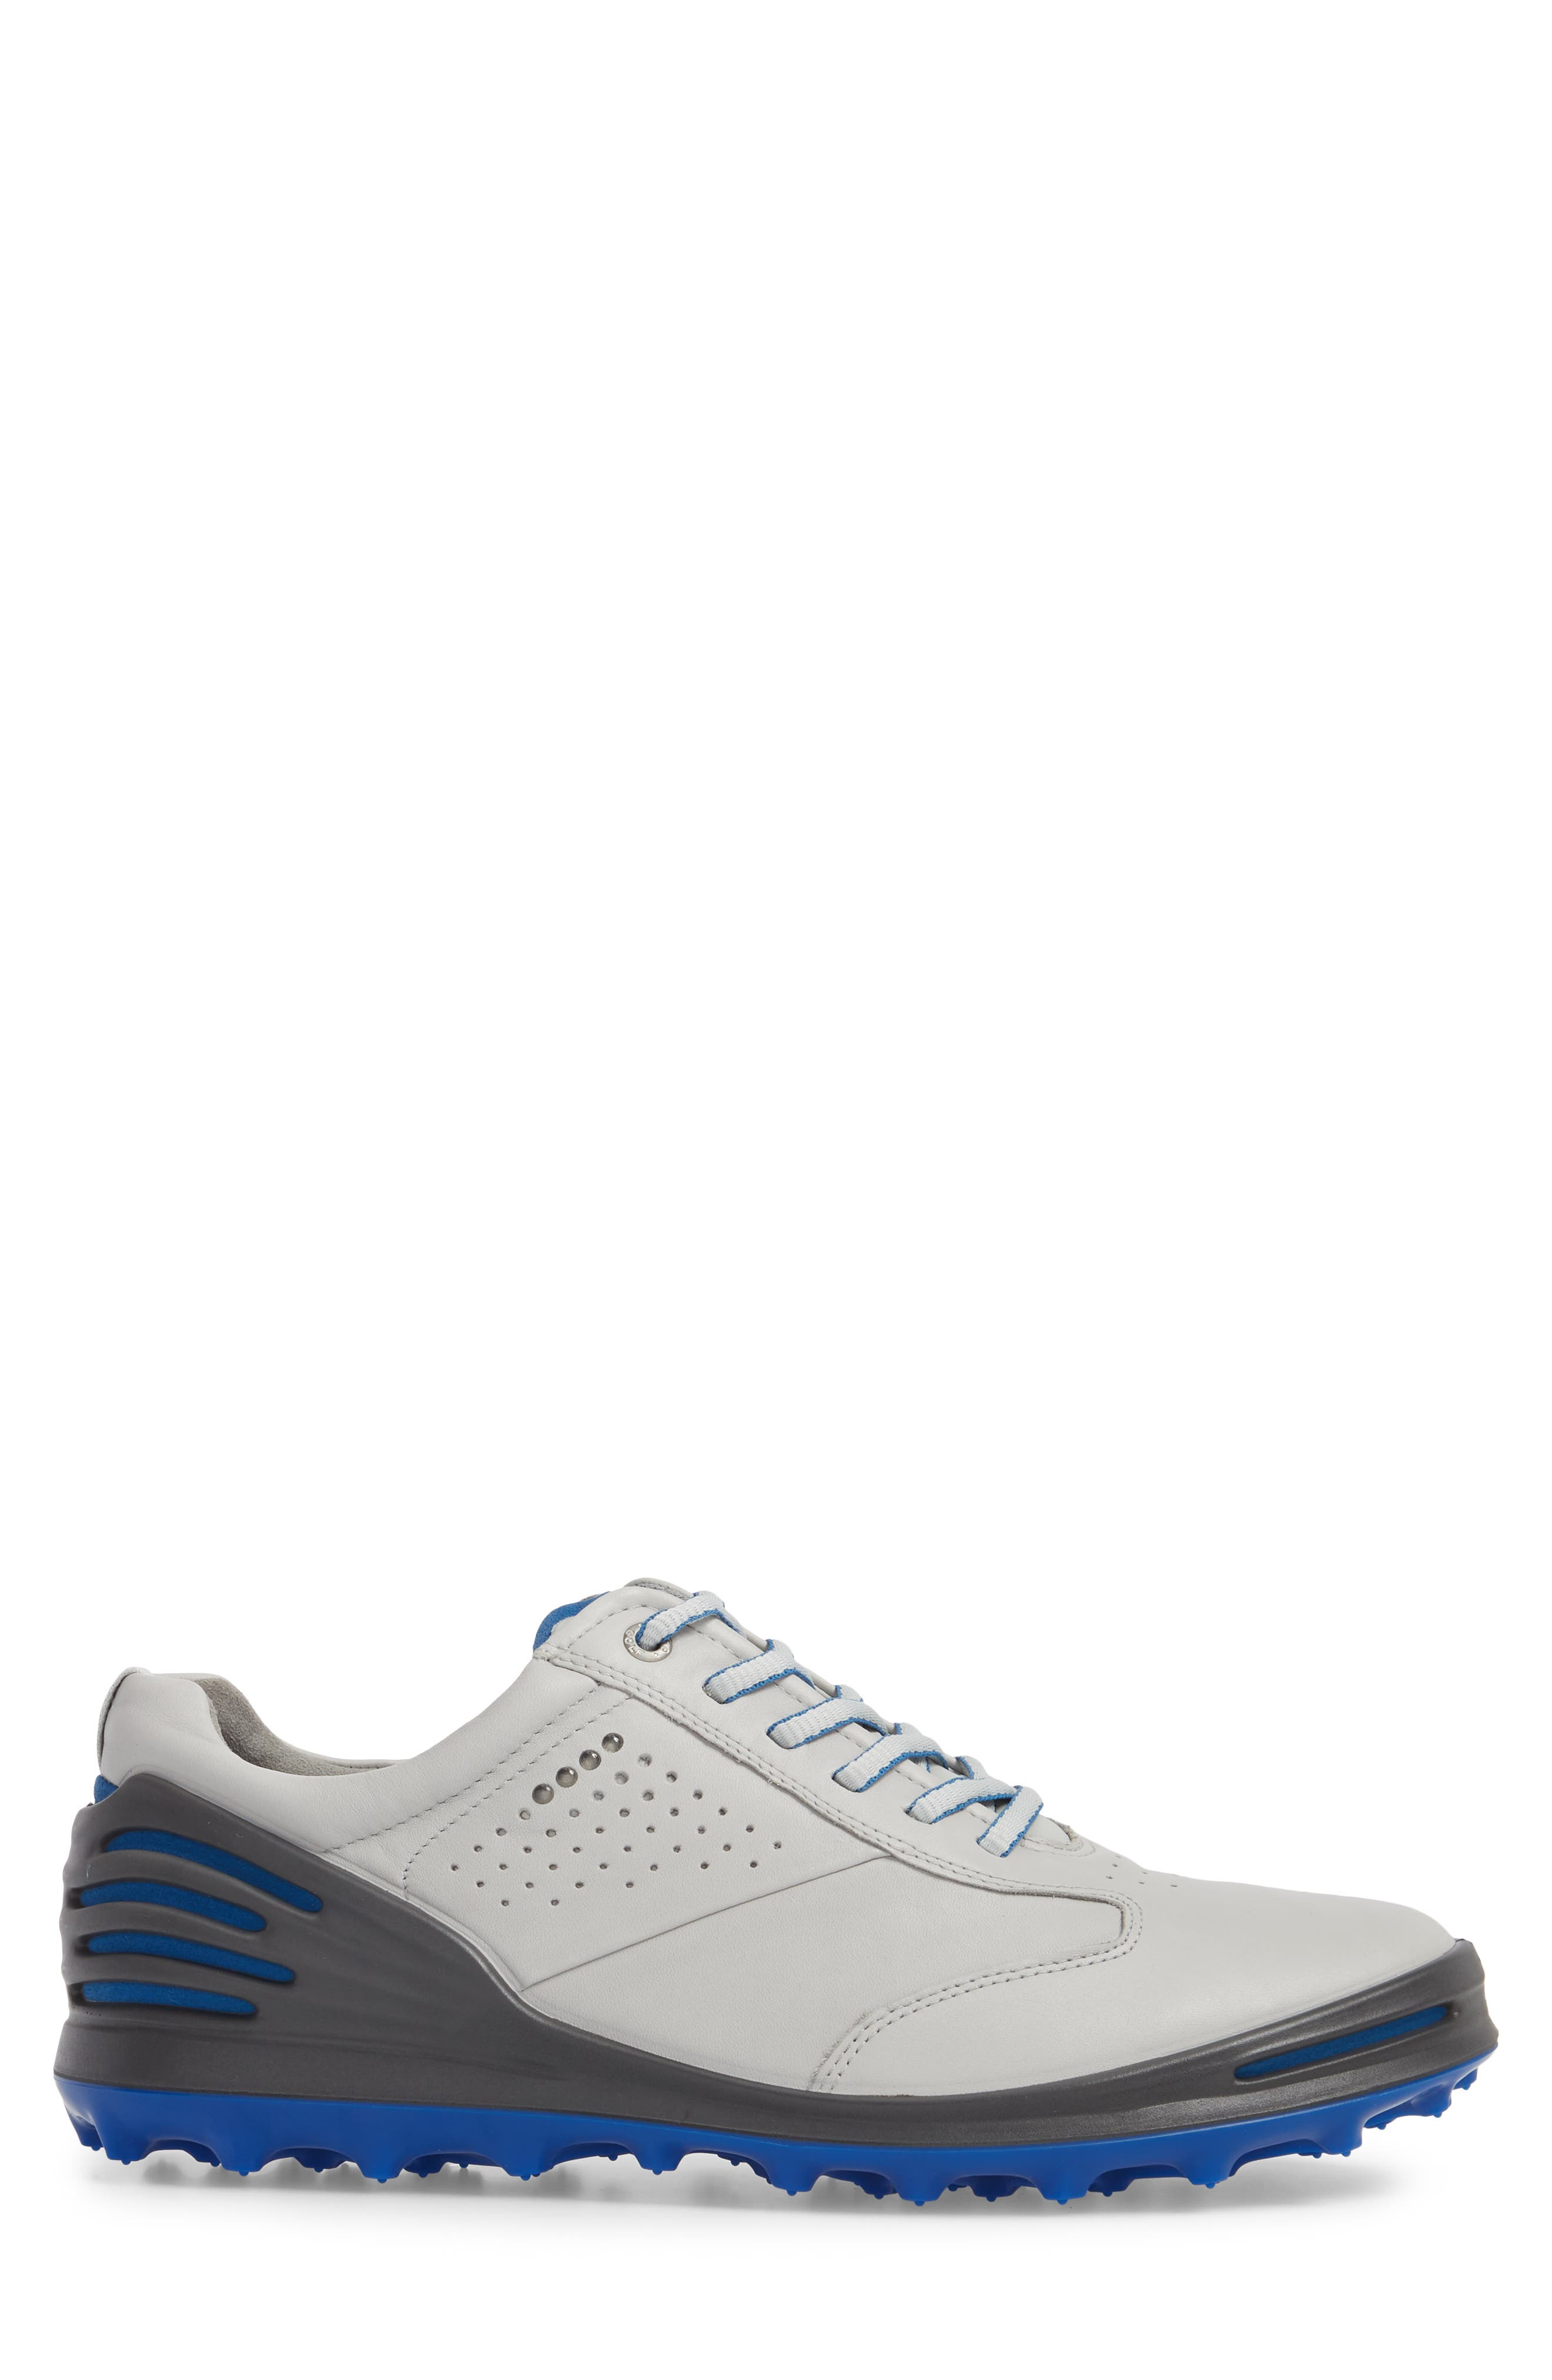 Cage Pro Golf Shoe,                             Alternate thumbnail 3, color,                             CONCRETE/ BERMUDA BLUE LEATHER